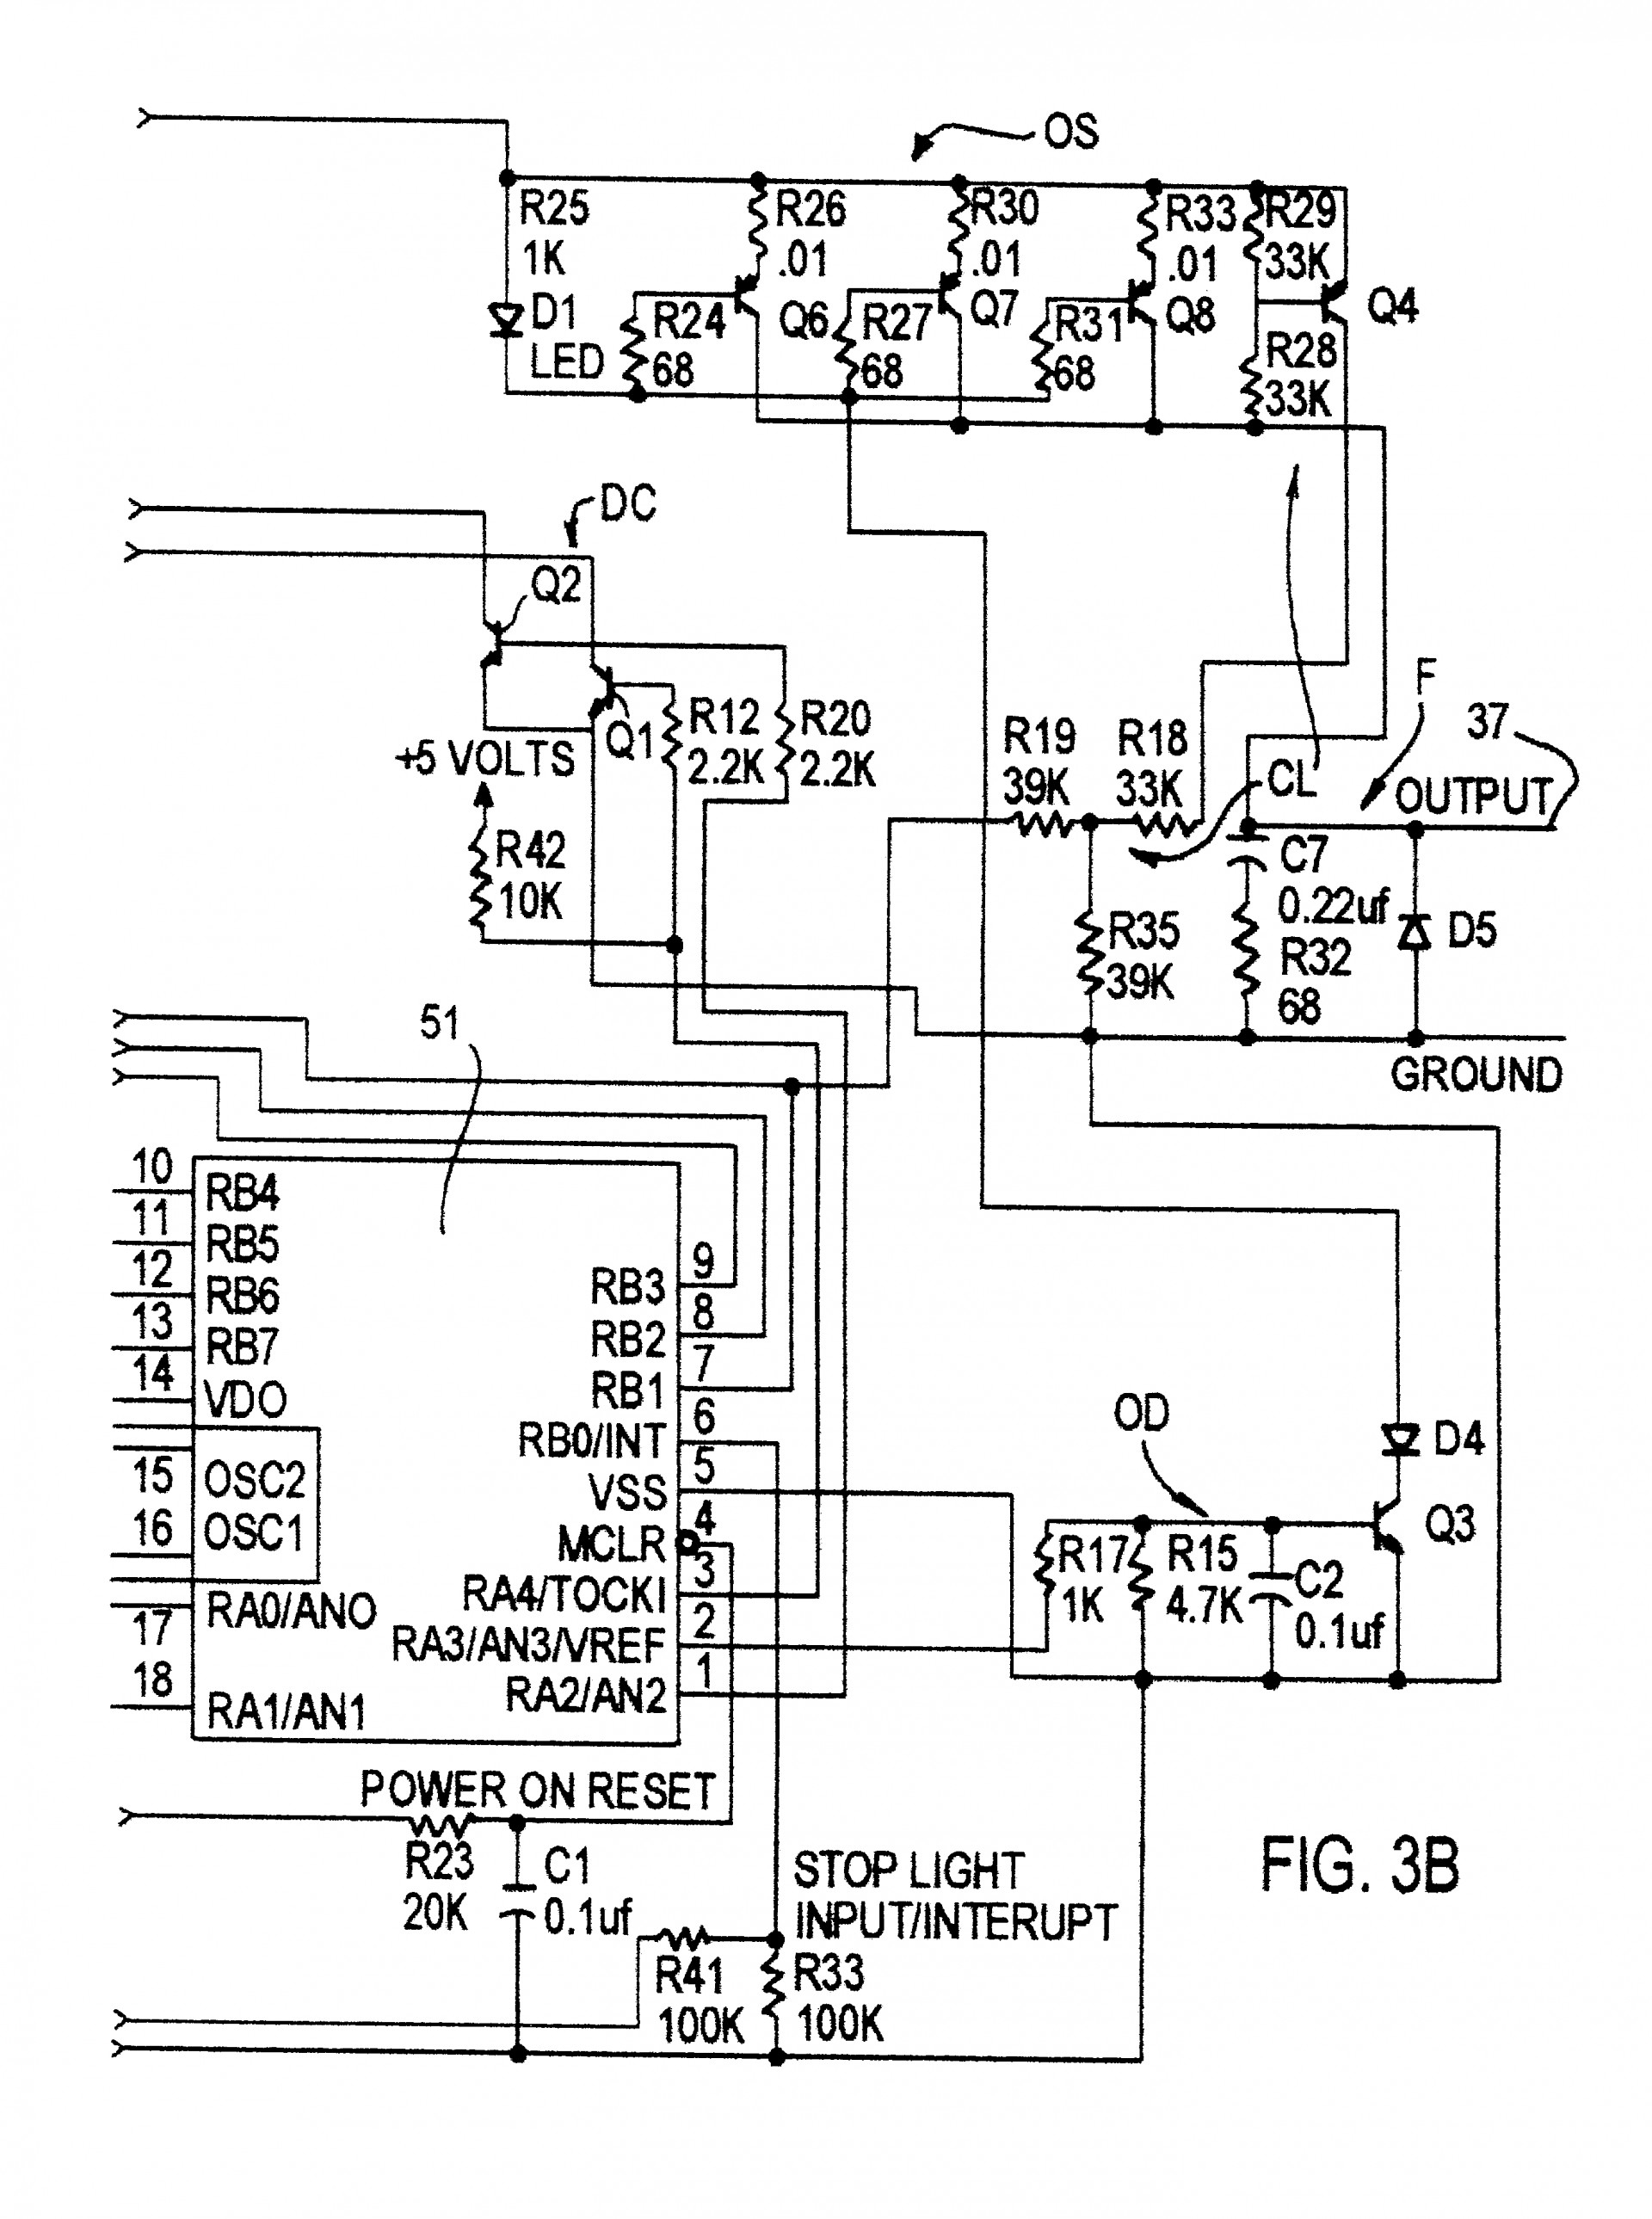 hight resolution of curtis controller wiring diagram potentiometer wiring diagram collection curtis controller wiring diagram fresh great potentiometer